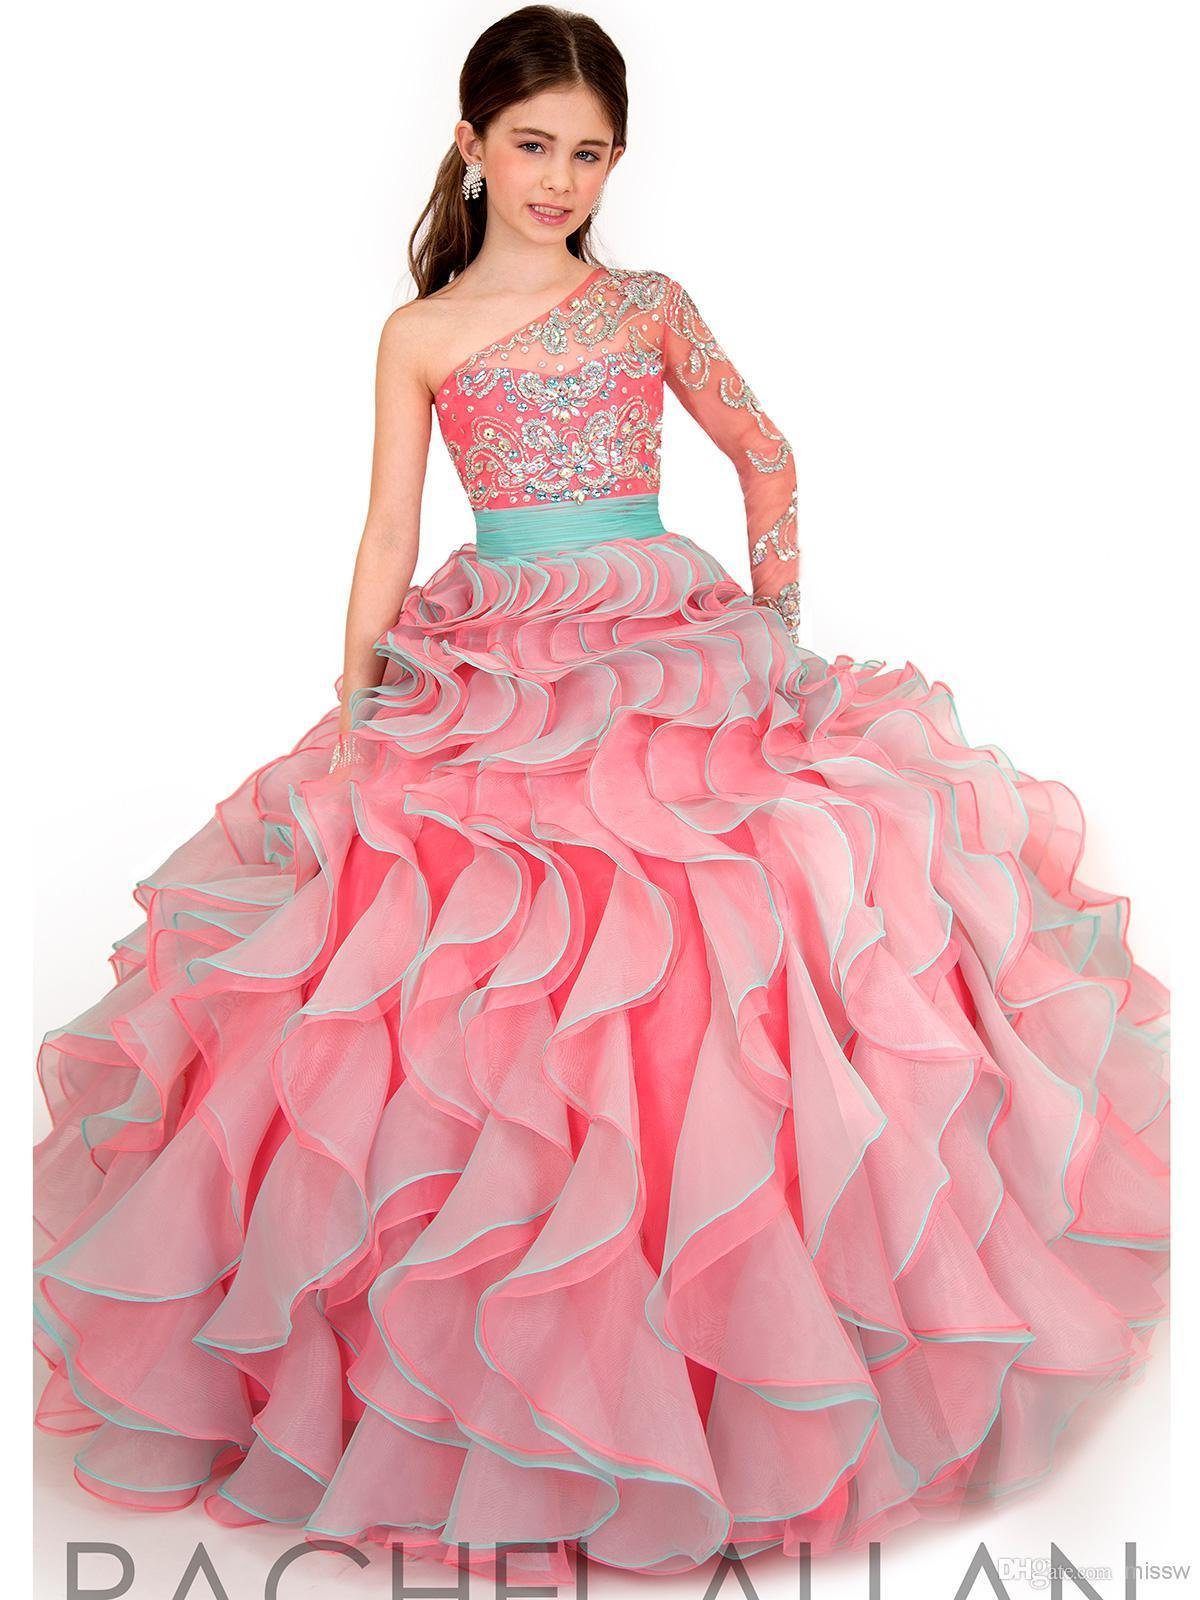 Compare Prices on Pageant Dresses Sale- Online Shopping/Buy Low ...